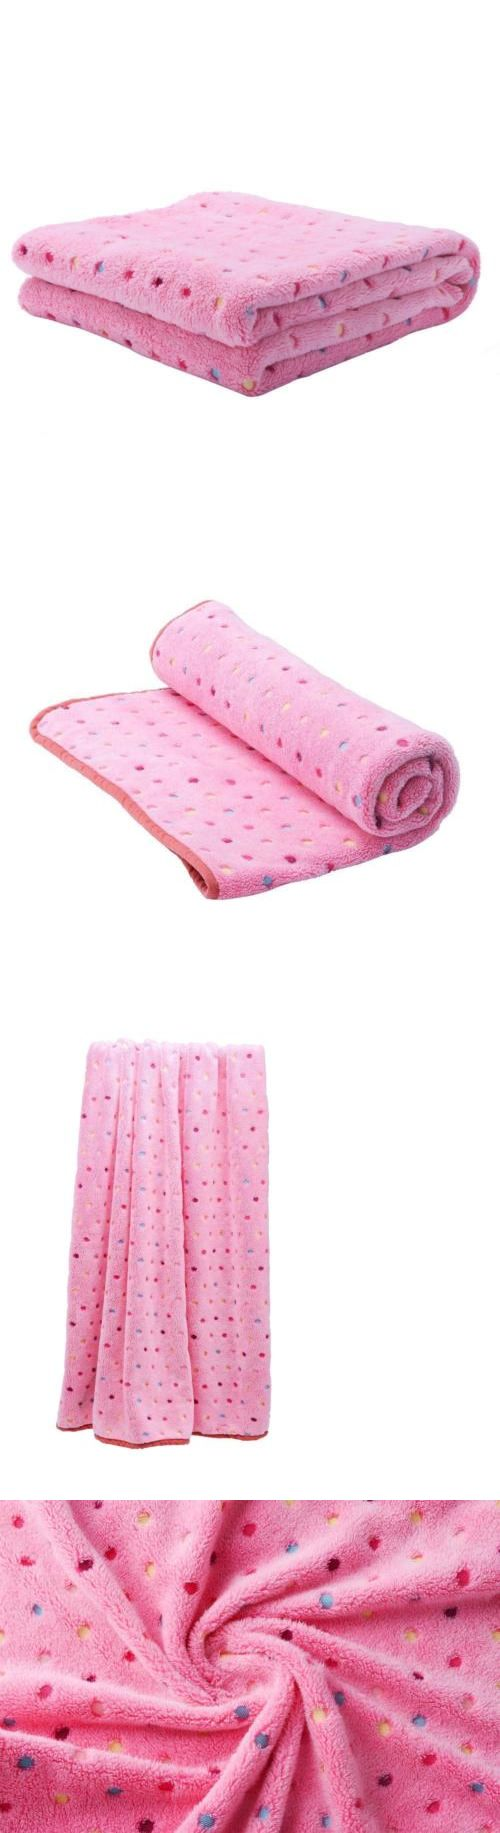 Blankets 116377: Pet Blanket Soft Polar Fleece Throw Sleeping Cover For Dogs And Cats -> BUY IT NOW ONLY: $30.08 on eBay!